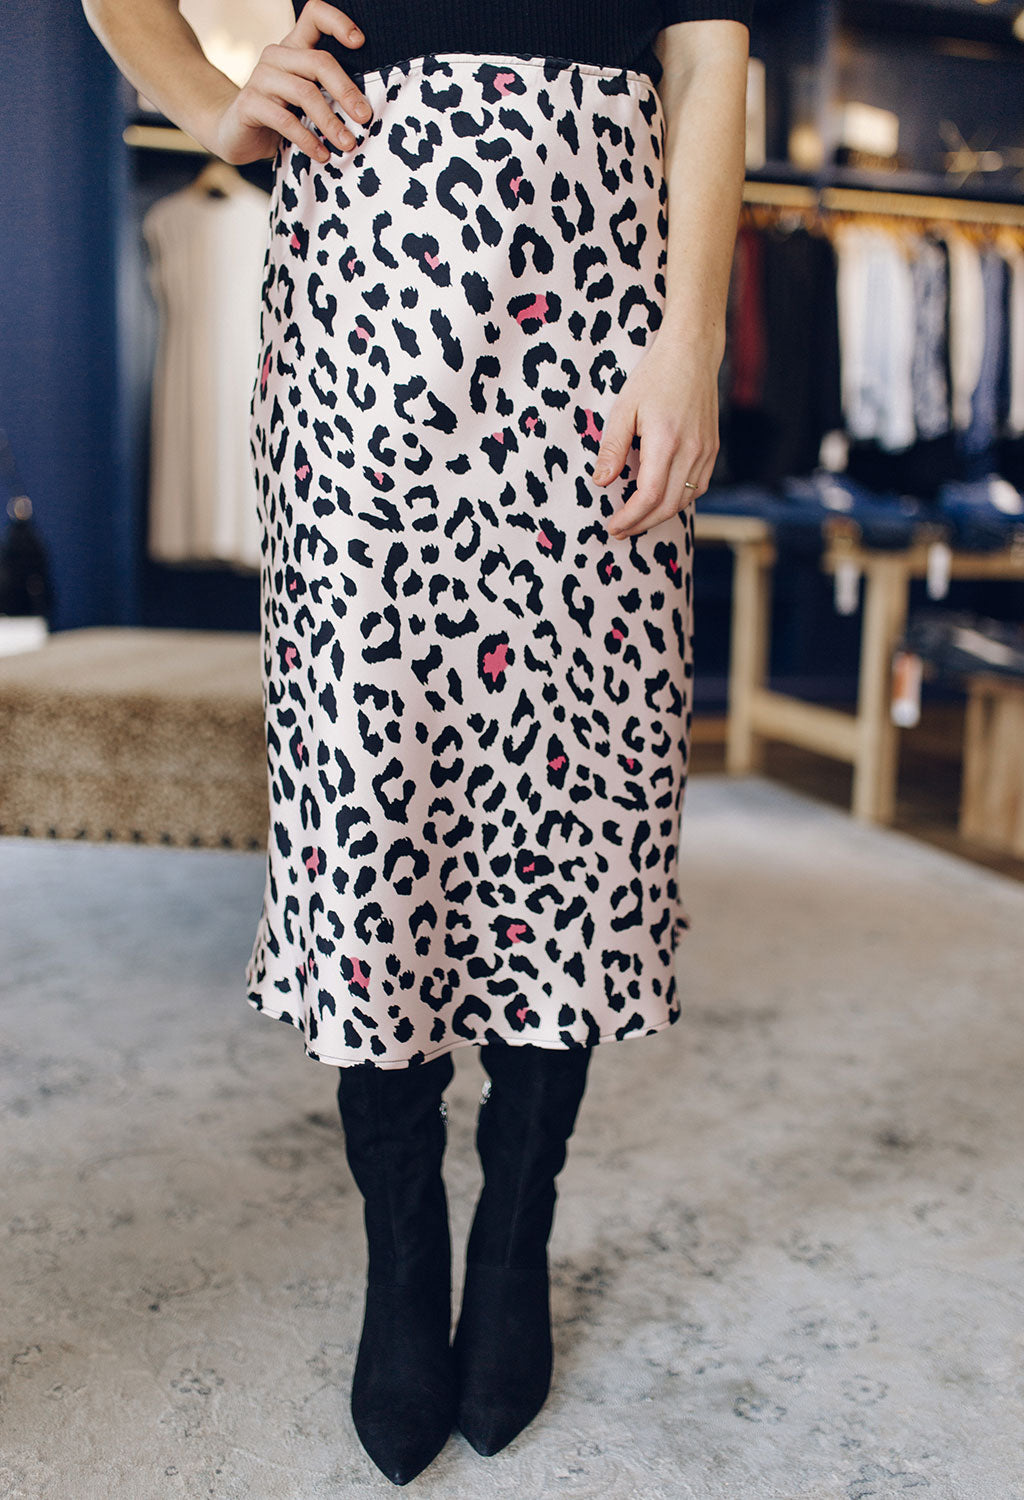 Tru Leopard Midi Skirt - RUST & Co.